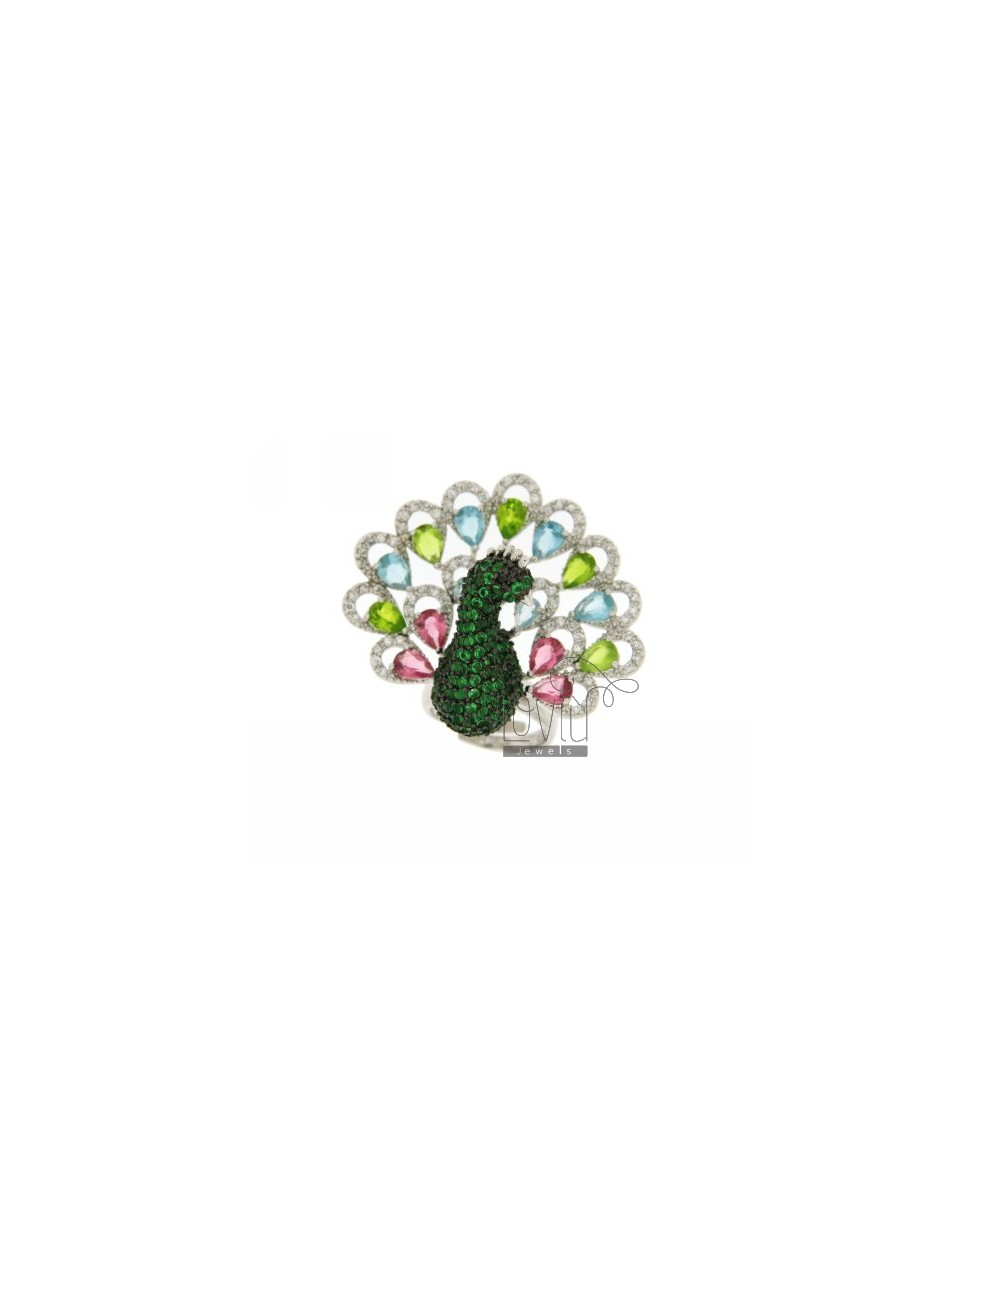 RING IN PEACOCK AG RHODIUM 925 ‰ TIT AND ZIRCONIA VARIOUS COLORS SIZE ADJUSTABLE